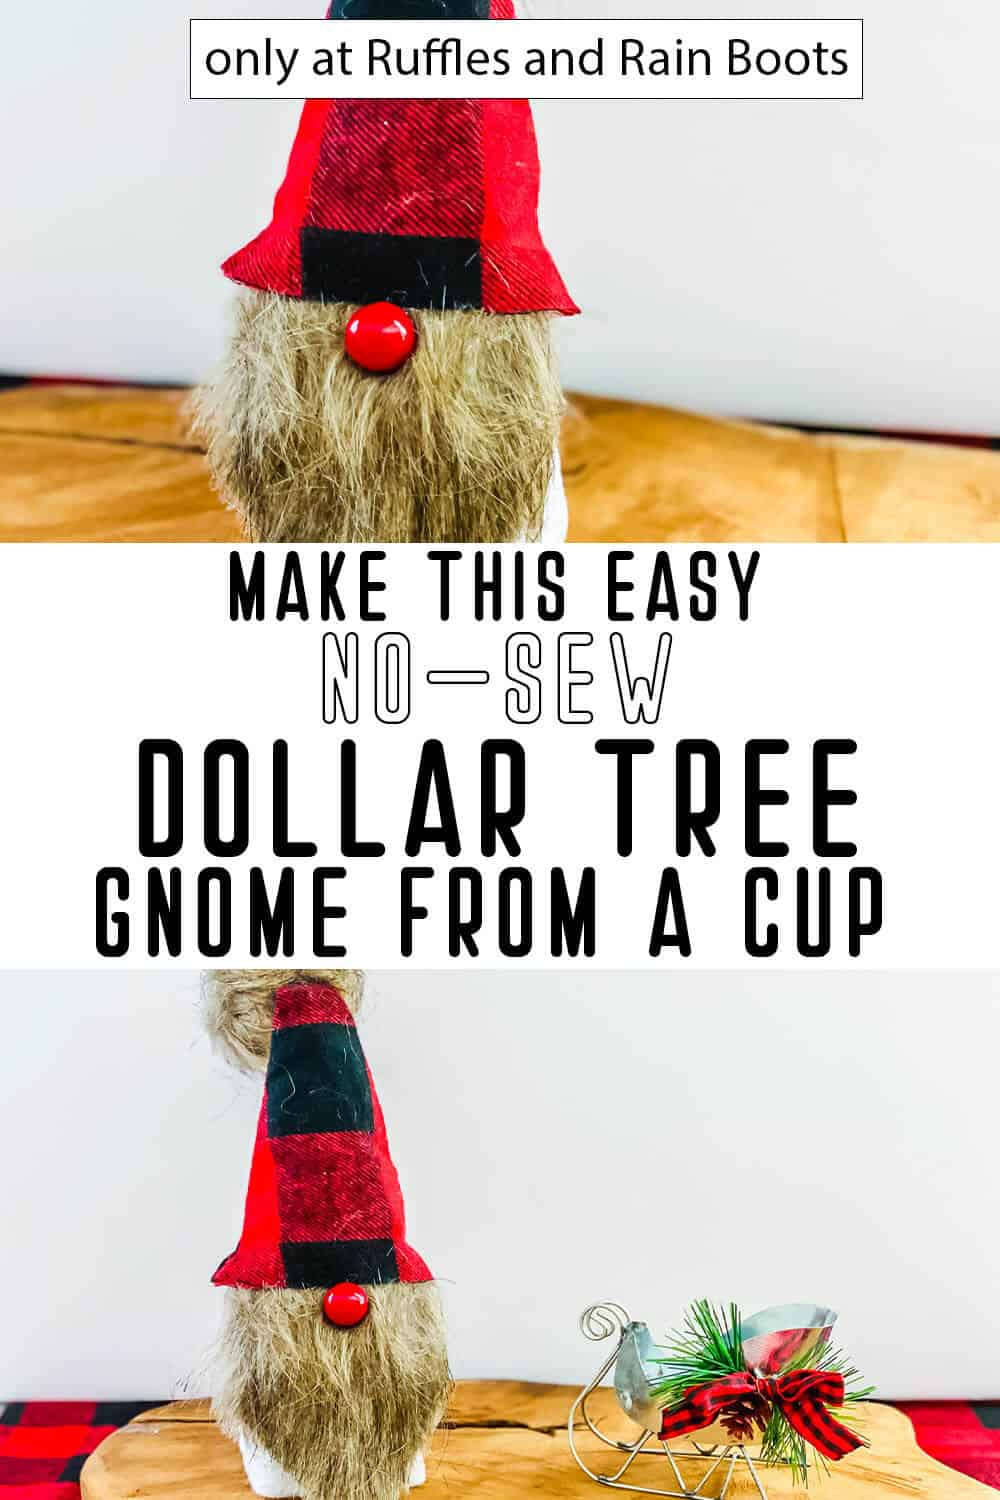 photo collage of dollar tree gnome with a cup body with text which reads make this easy no-sew dollar tree gnome from a cup